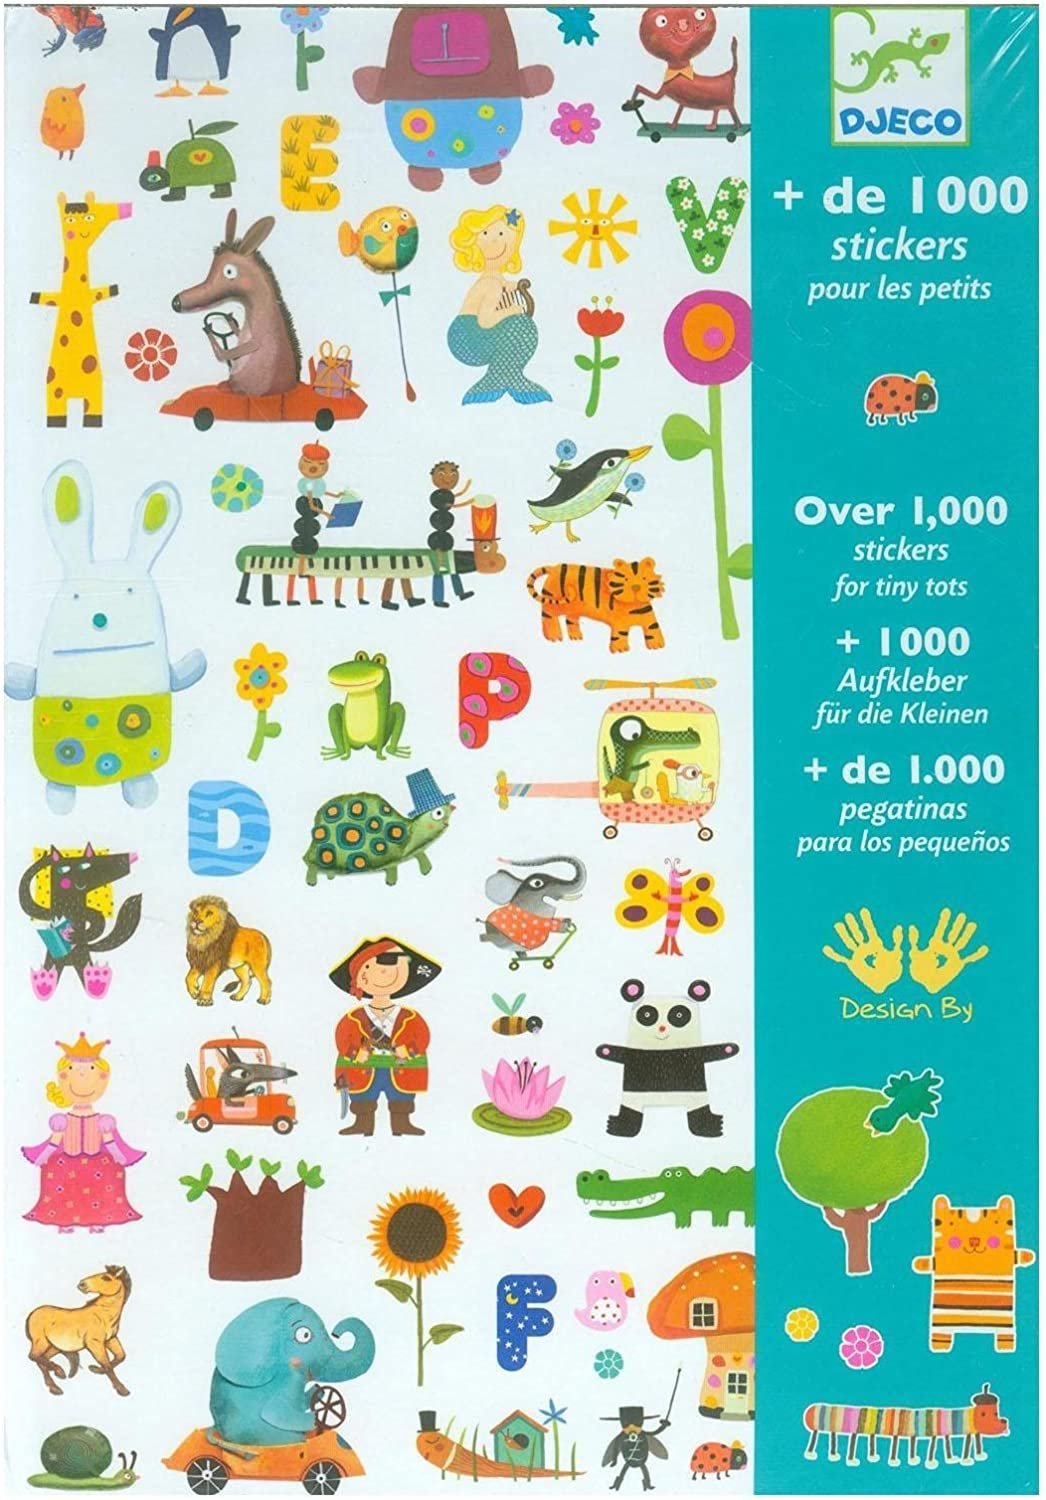 Djeco DJ08950 Stickers-1000 Stickers For Little Ones Novelty